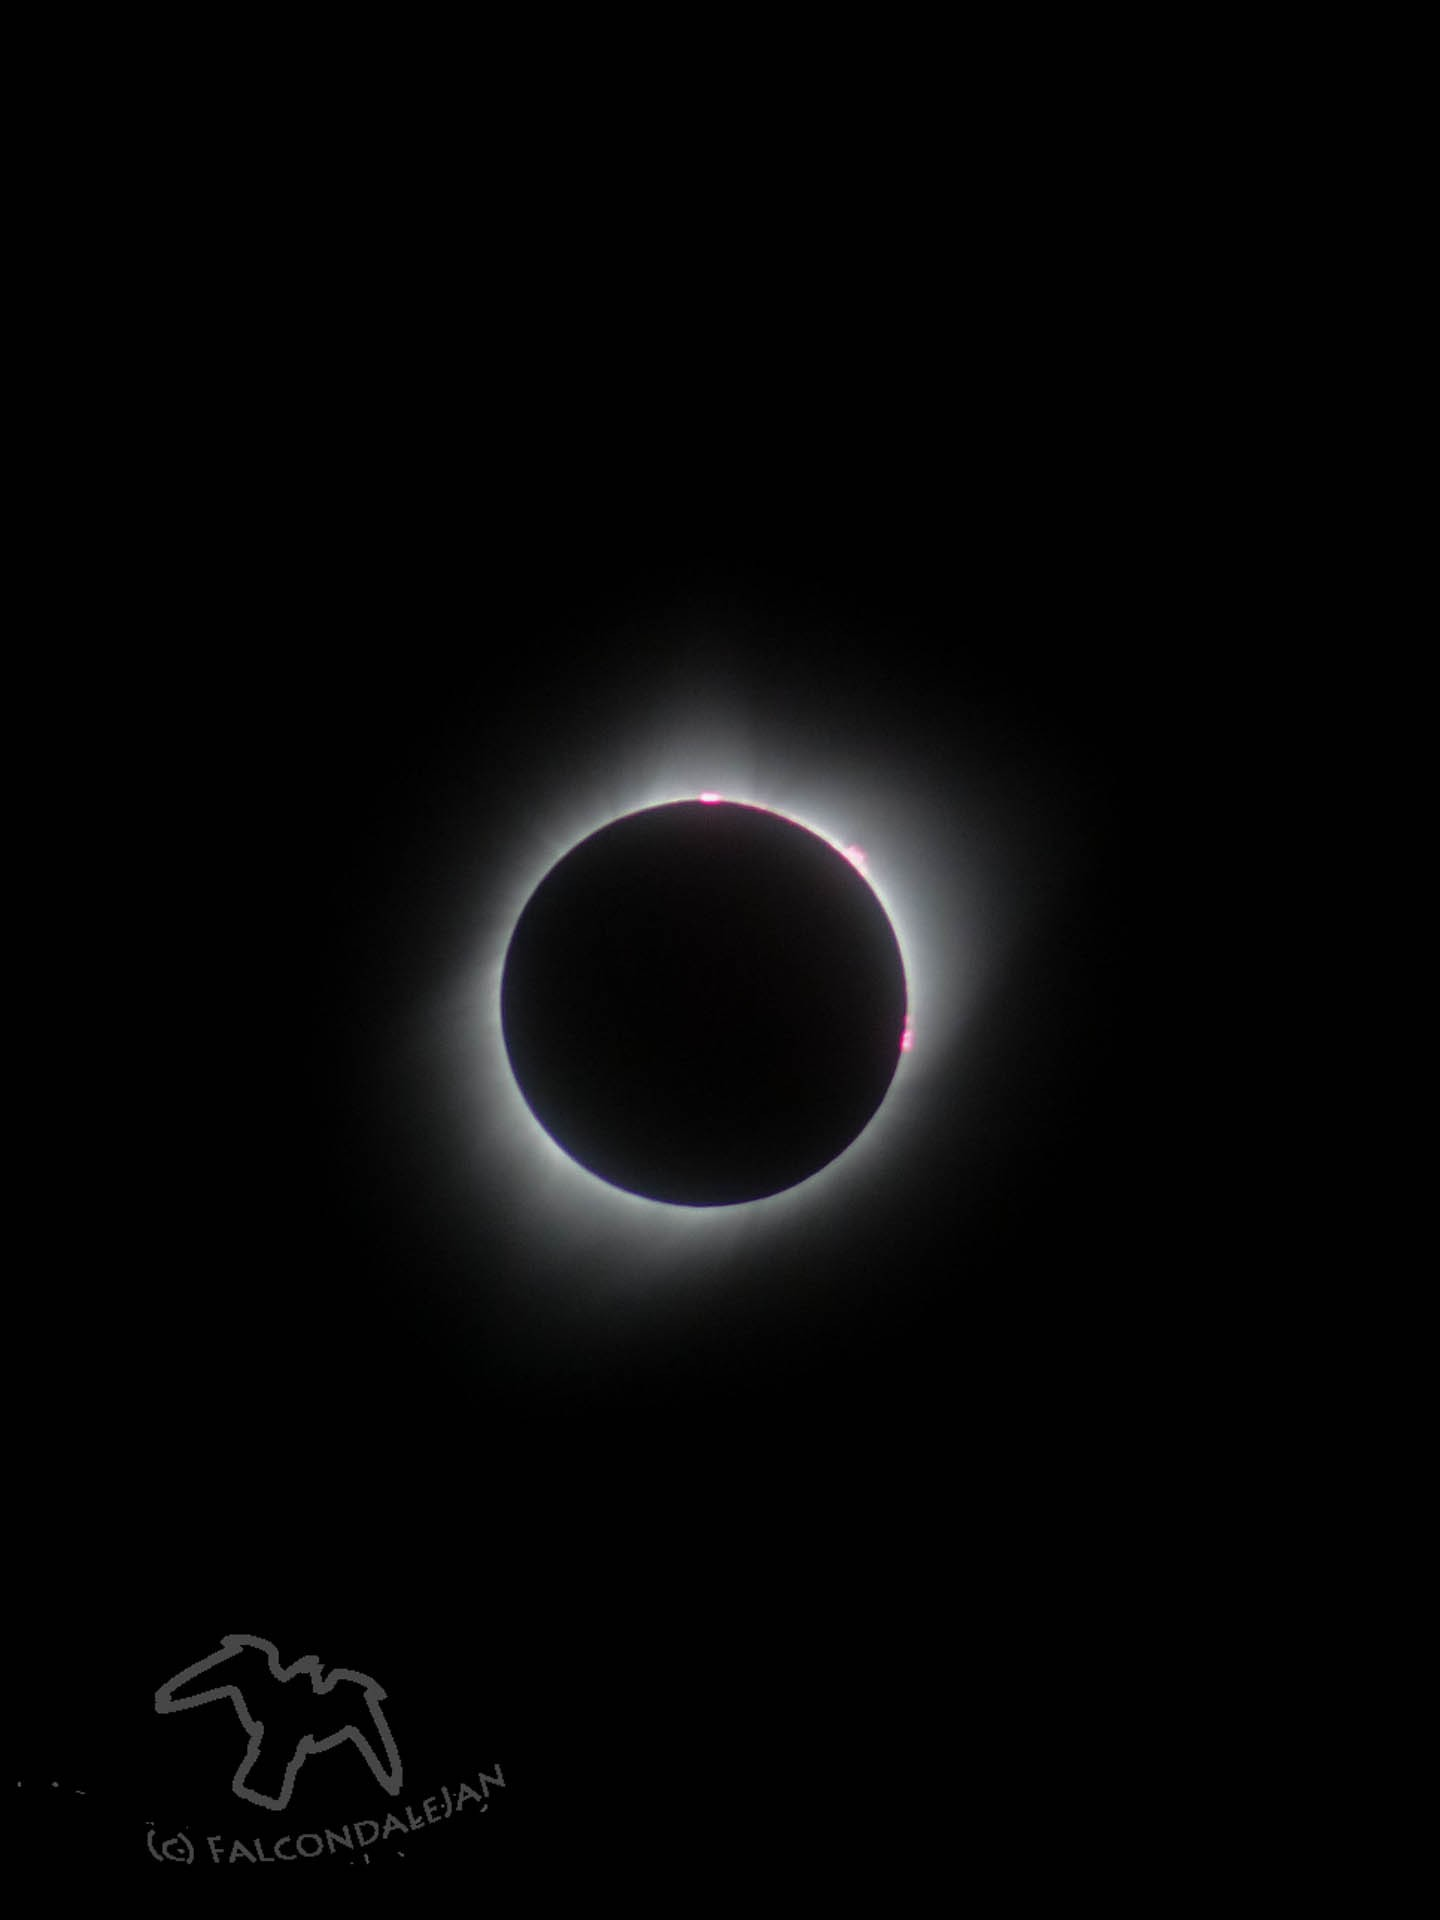 Story and photos of our family trip to see totality of the 2017 solar eclipse, Nebraska USA. How we did vacation planning, eclipse chasing and camera setup. Totality solar eclipse phase.